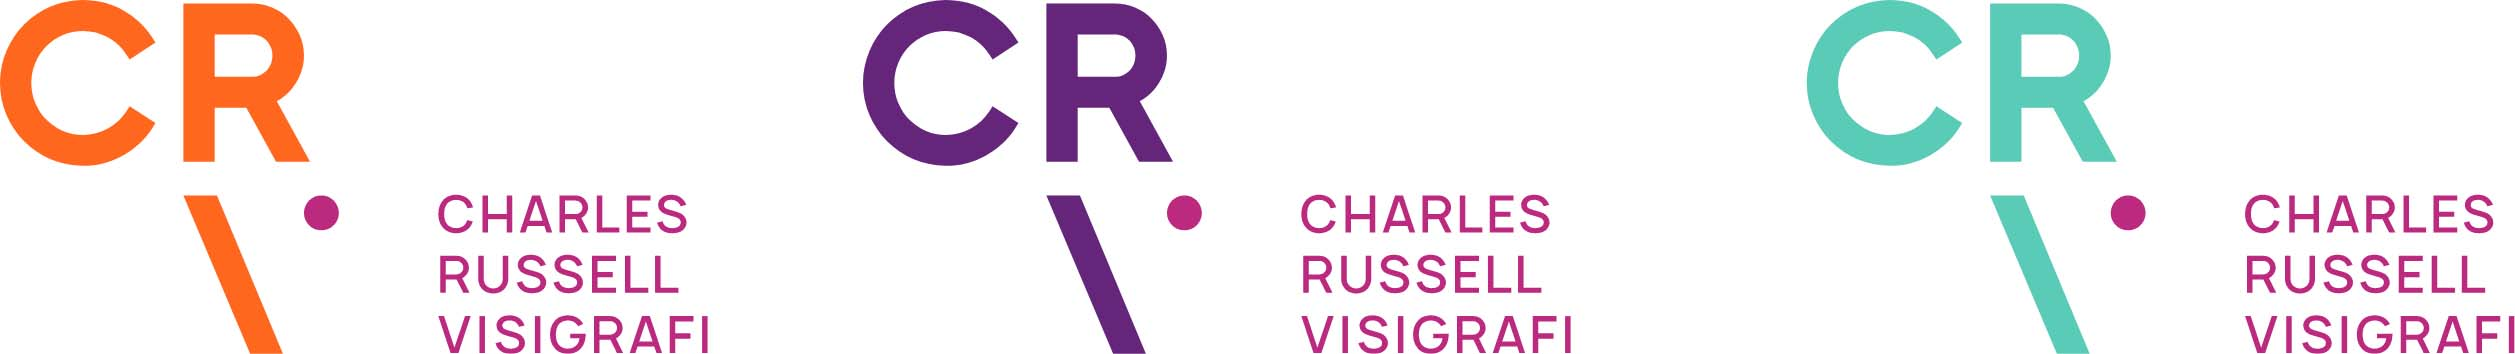 Creative Caterpillar client Charles Russell Visigrafi stacked logo colour combinations.